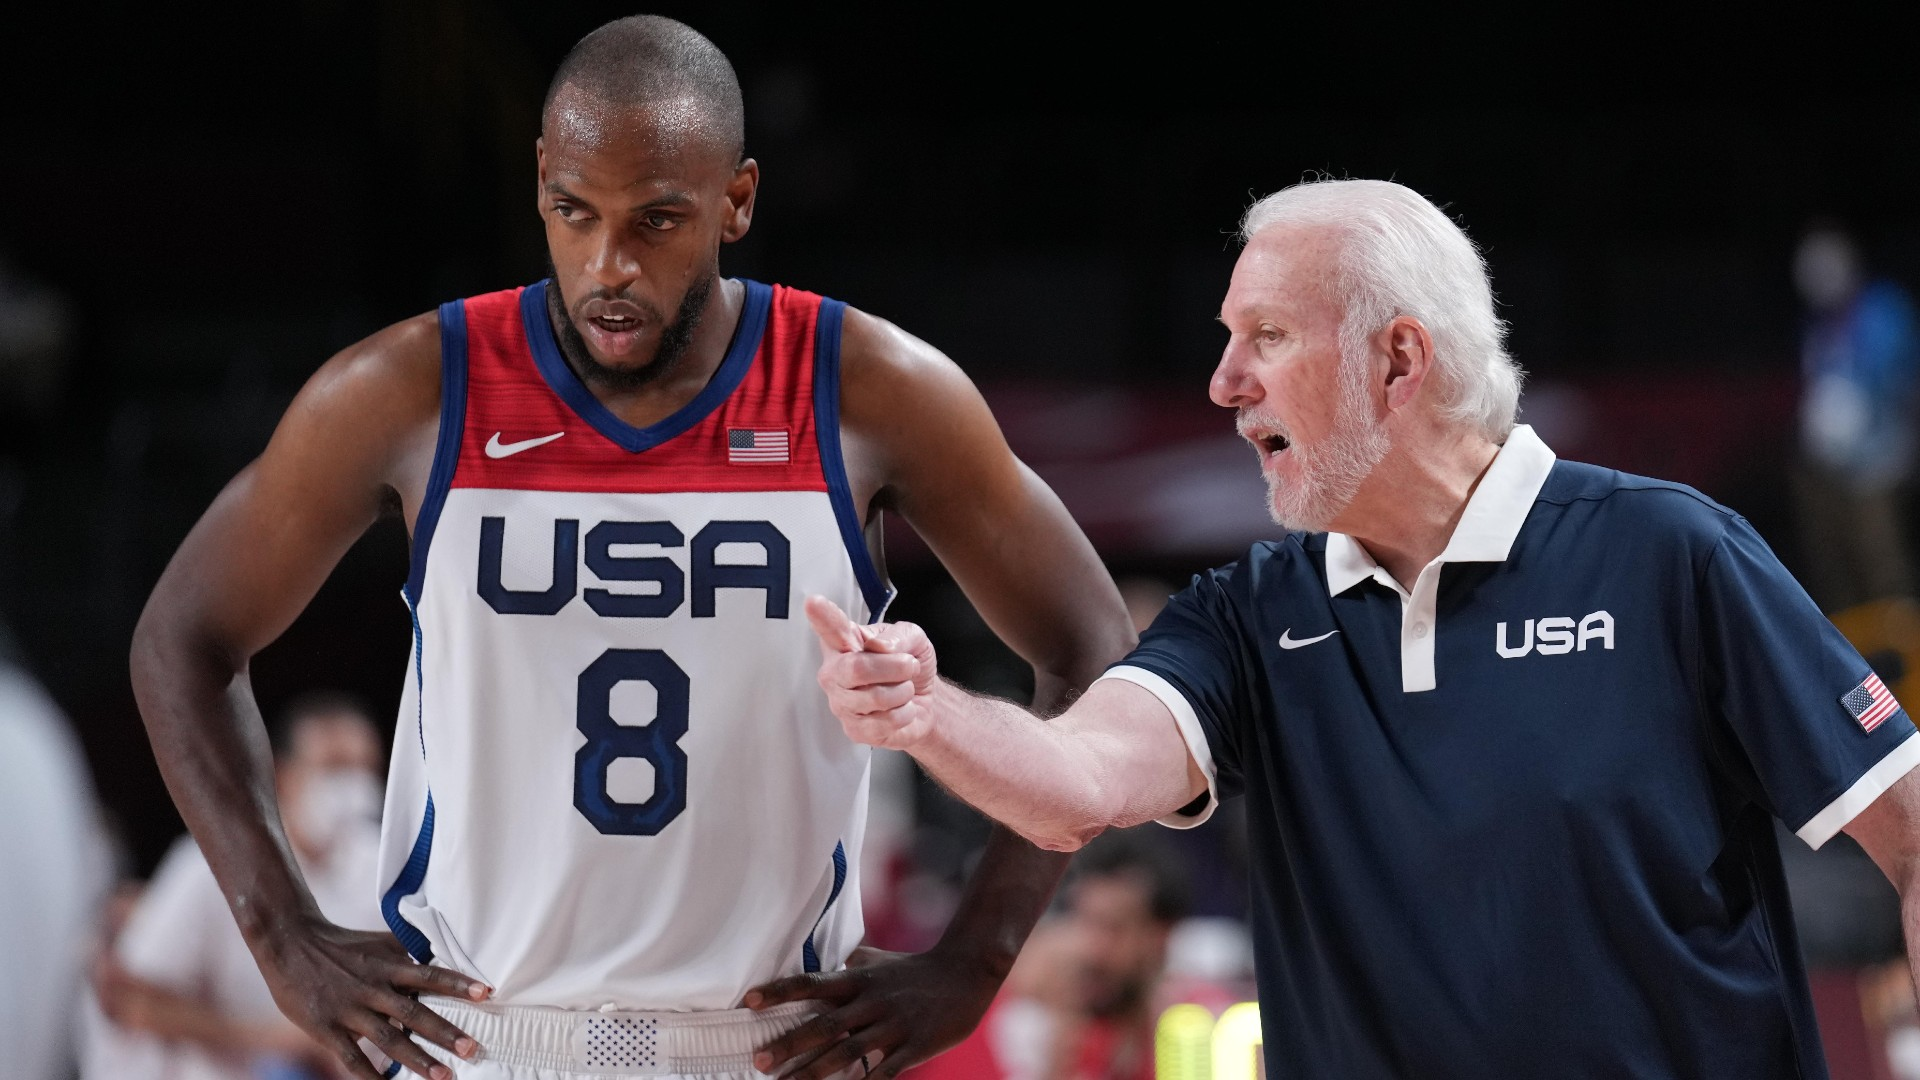 USA vs. Czech Republic live score, updates, highlights from 2021 Olympic men's basketball game